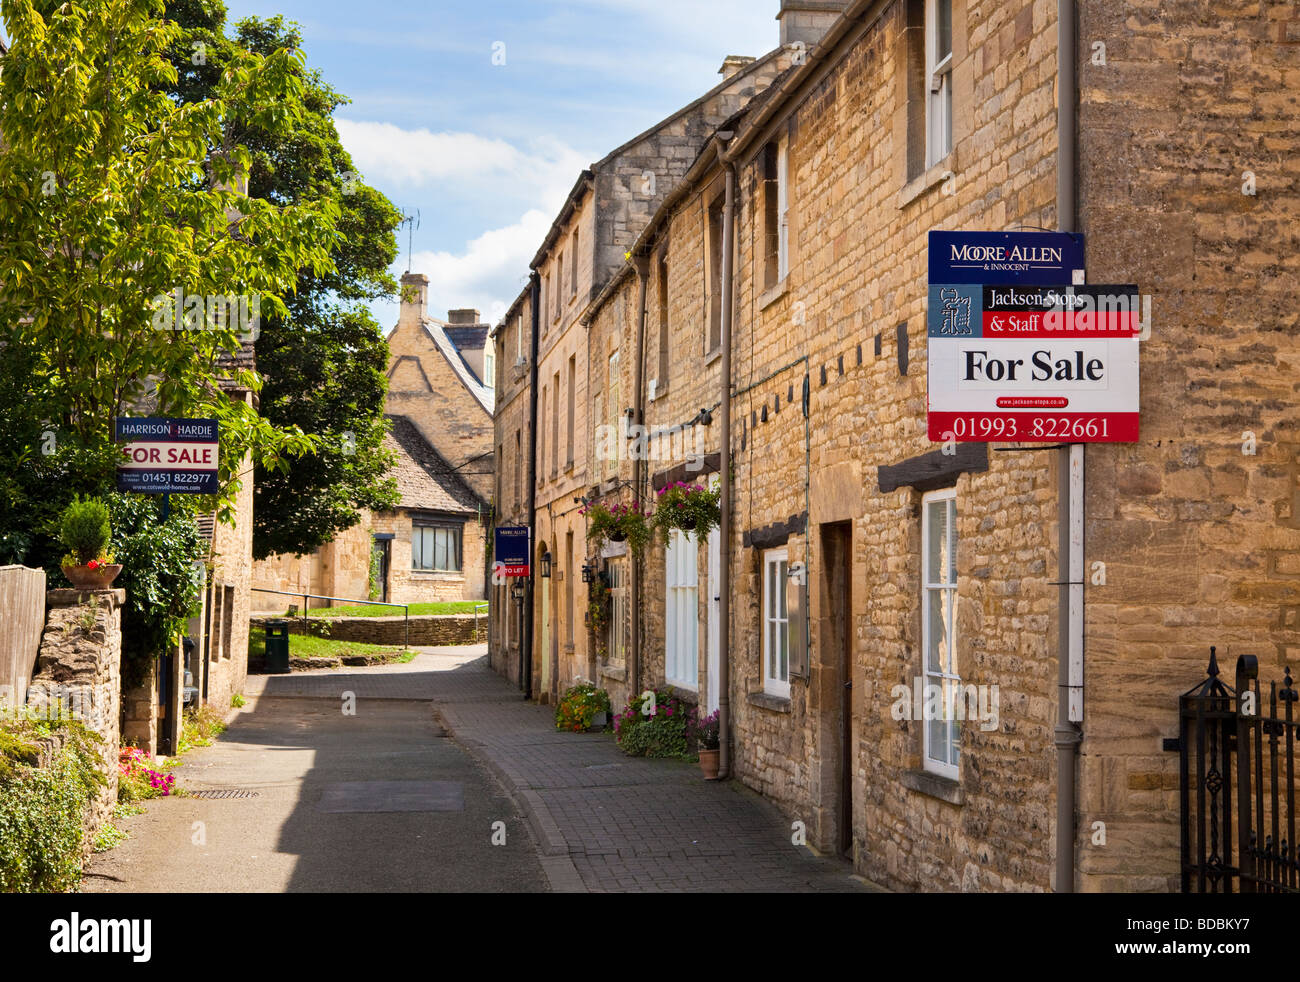 House for sale sign on a village property in Northleach, Gloucestershire, UK - Stock Image